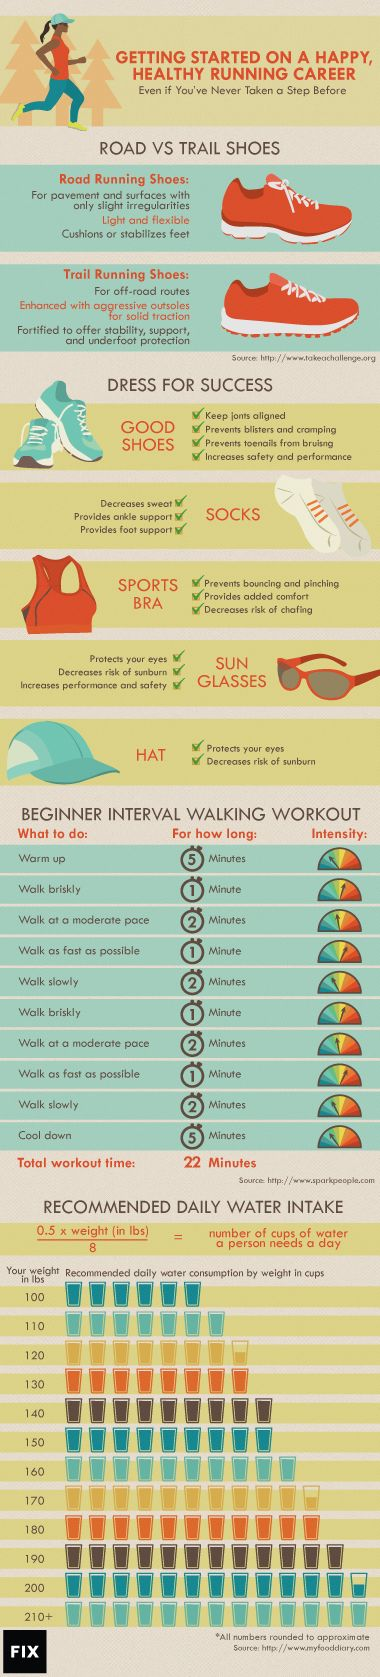 These 29 Diagrams Are All You Need To Get In Shape - BuzzFeed News